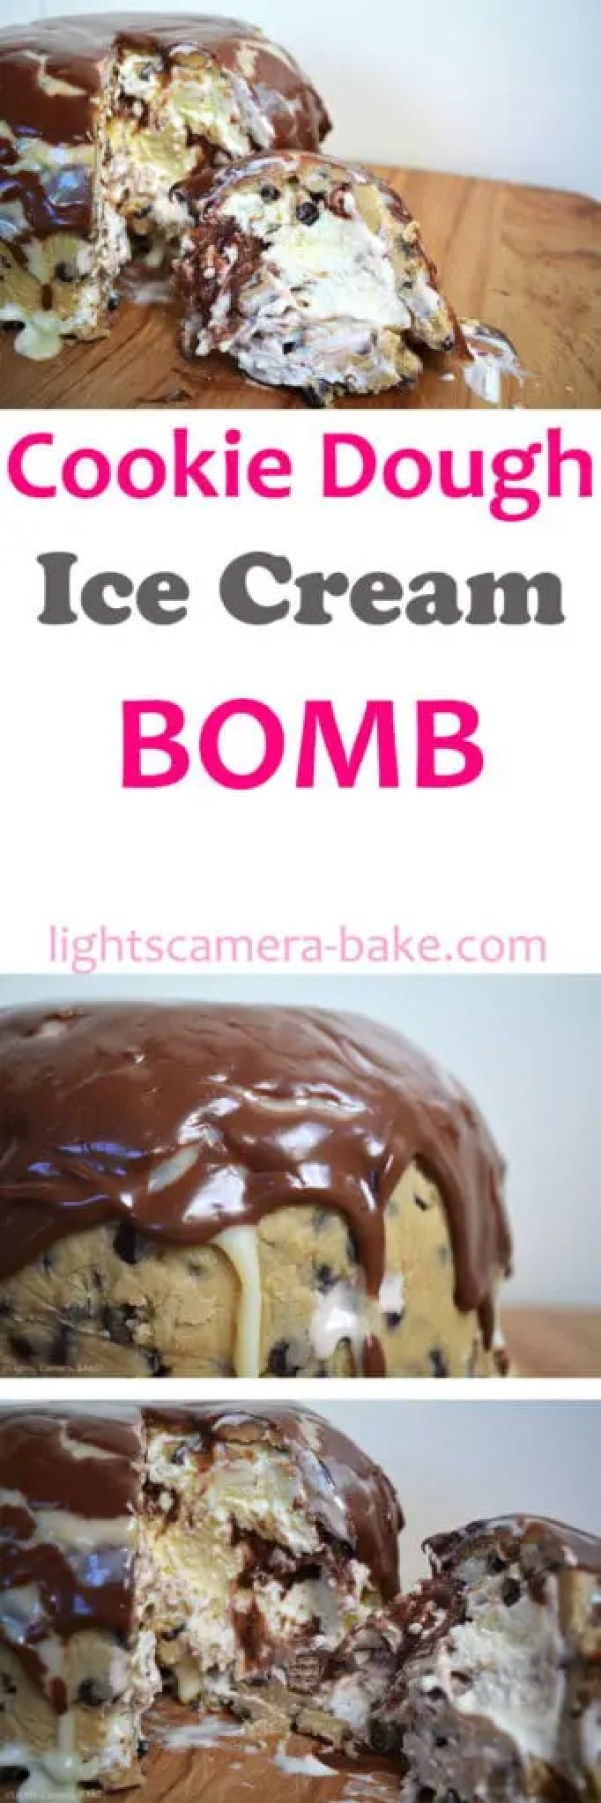 Cookie Dough Ice Cream Bomb is an over-the-top frozen treat that consists of a cookie dough case and filled with ice cream, chocolate sauce, white chocolate ganache, KitKats and finished off with Nutella and more white chocolate ganache!